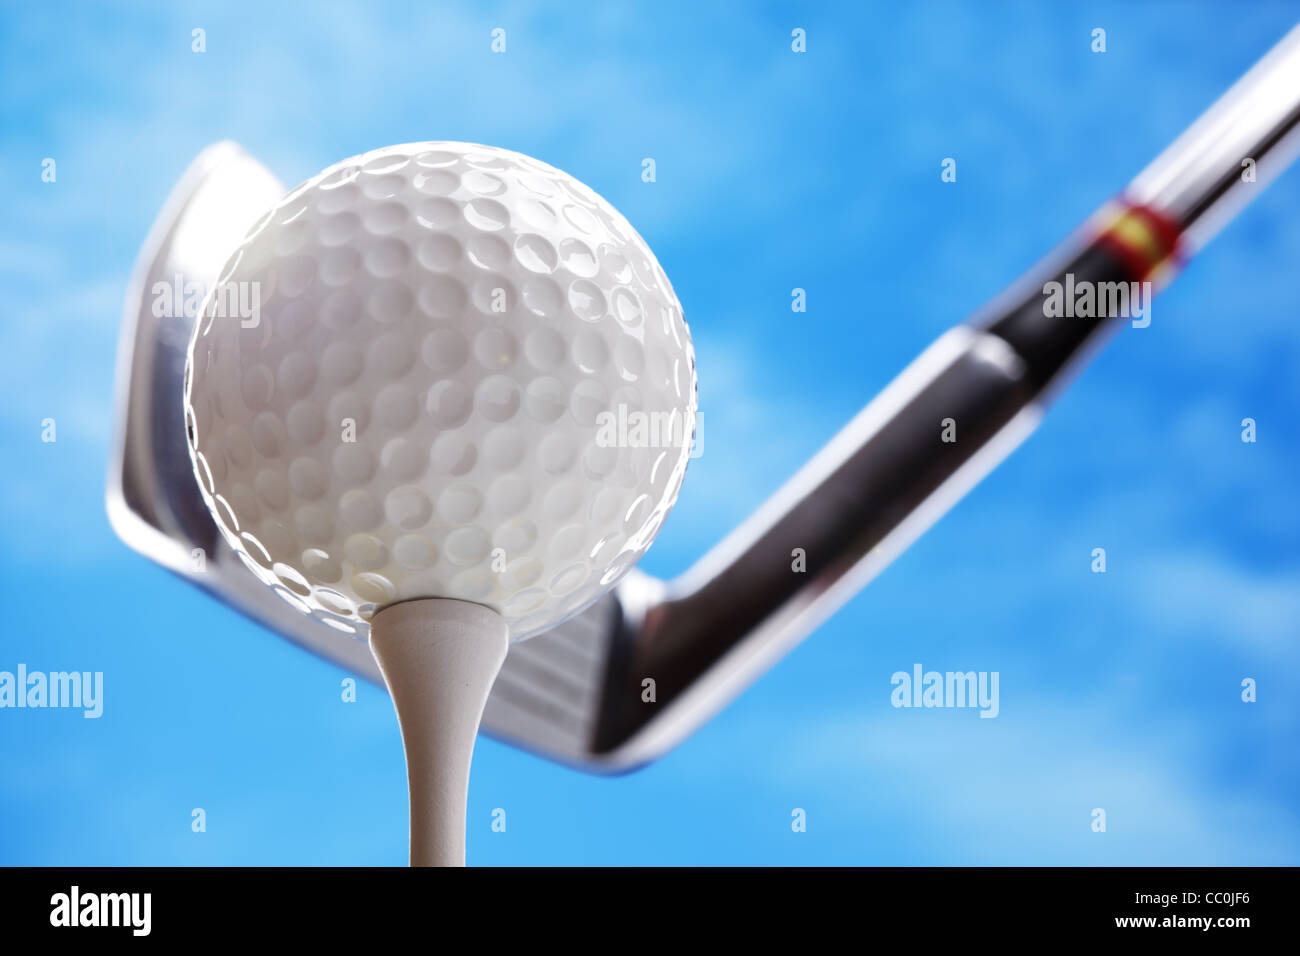 Golf ball and club - Stock Image